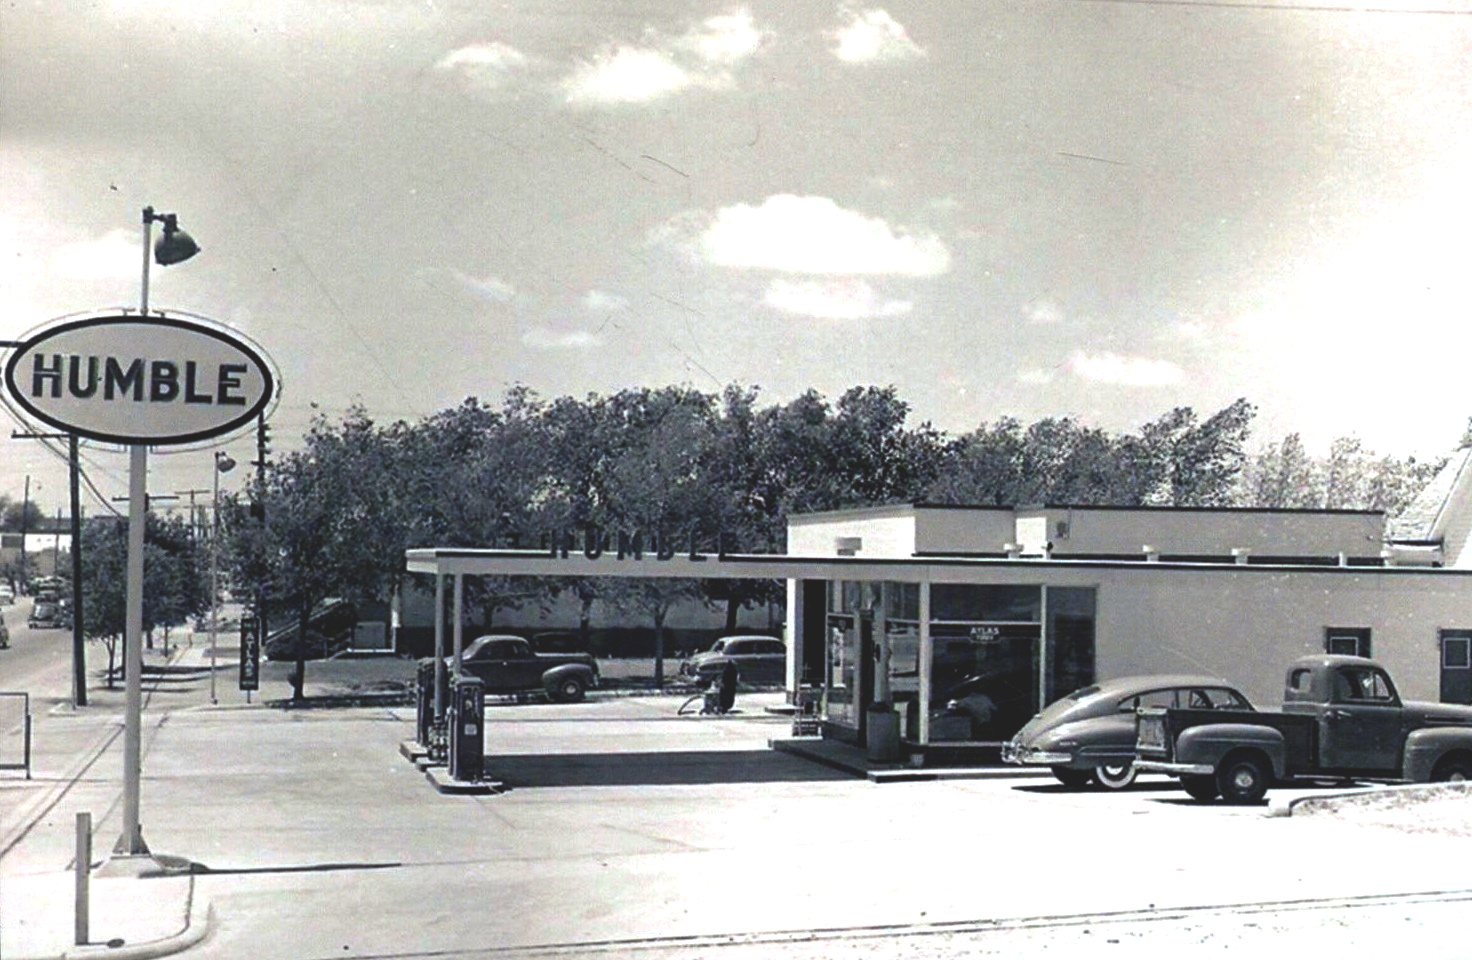 Humble Gas Station Snyder 1940s